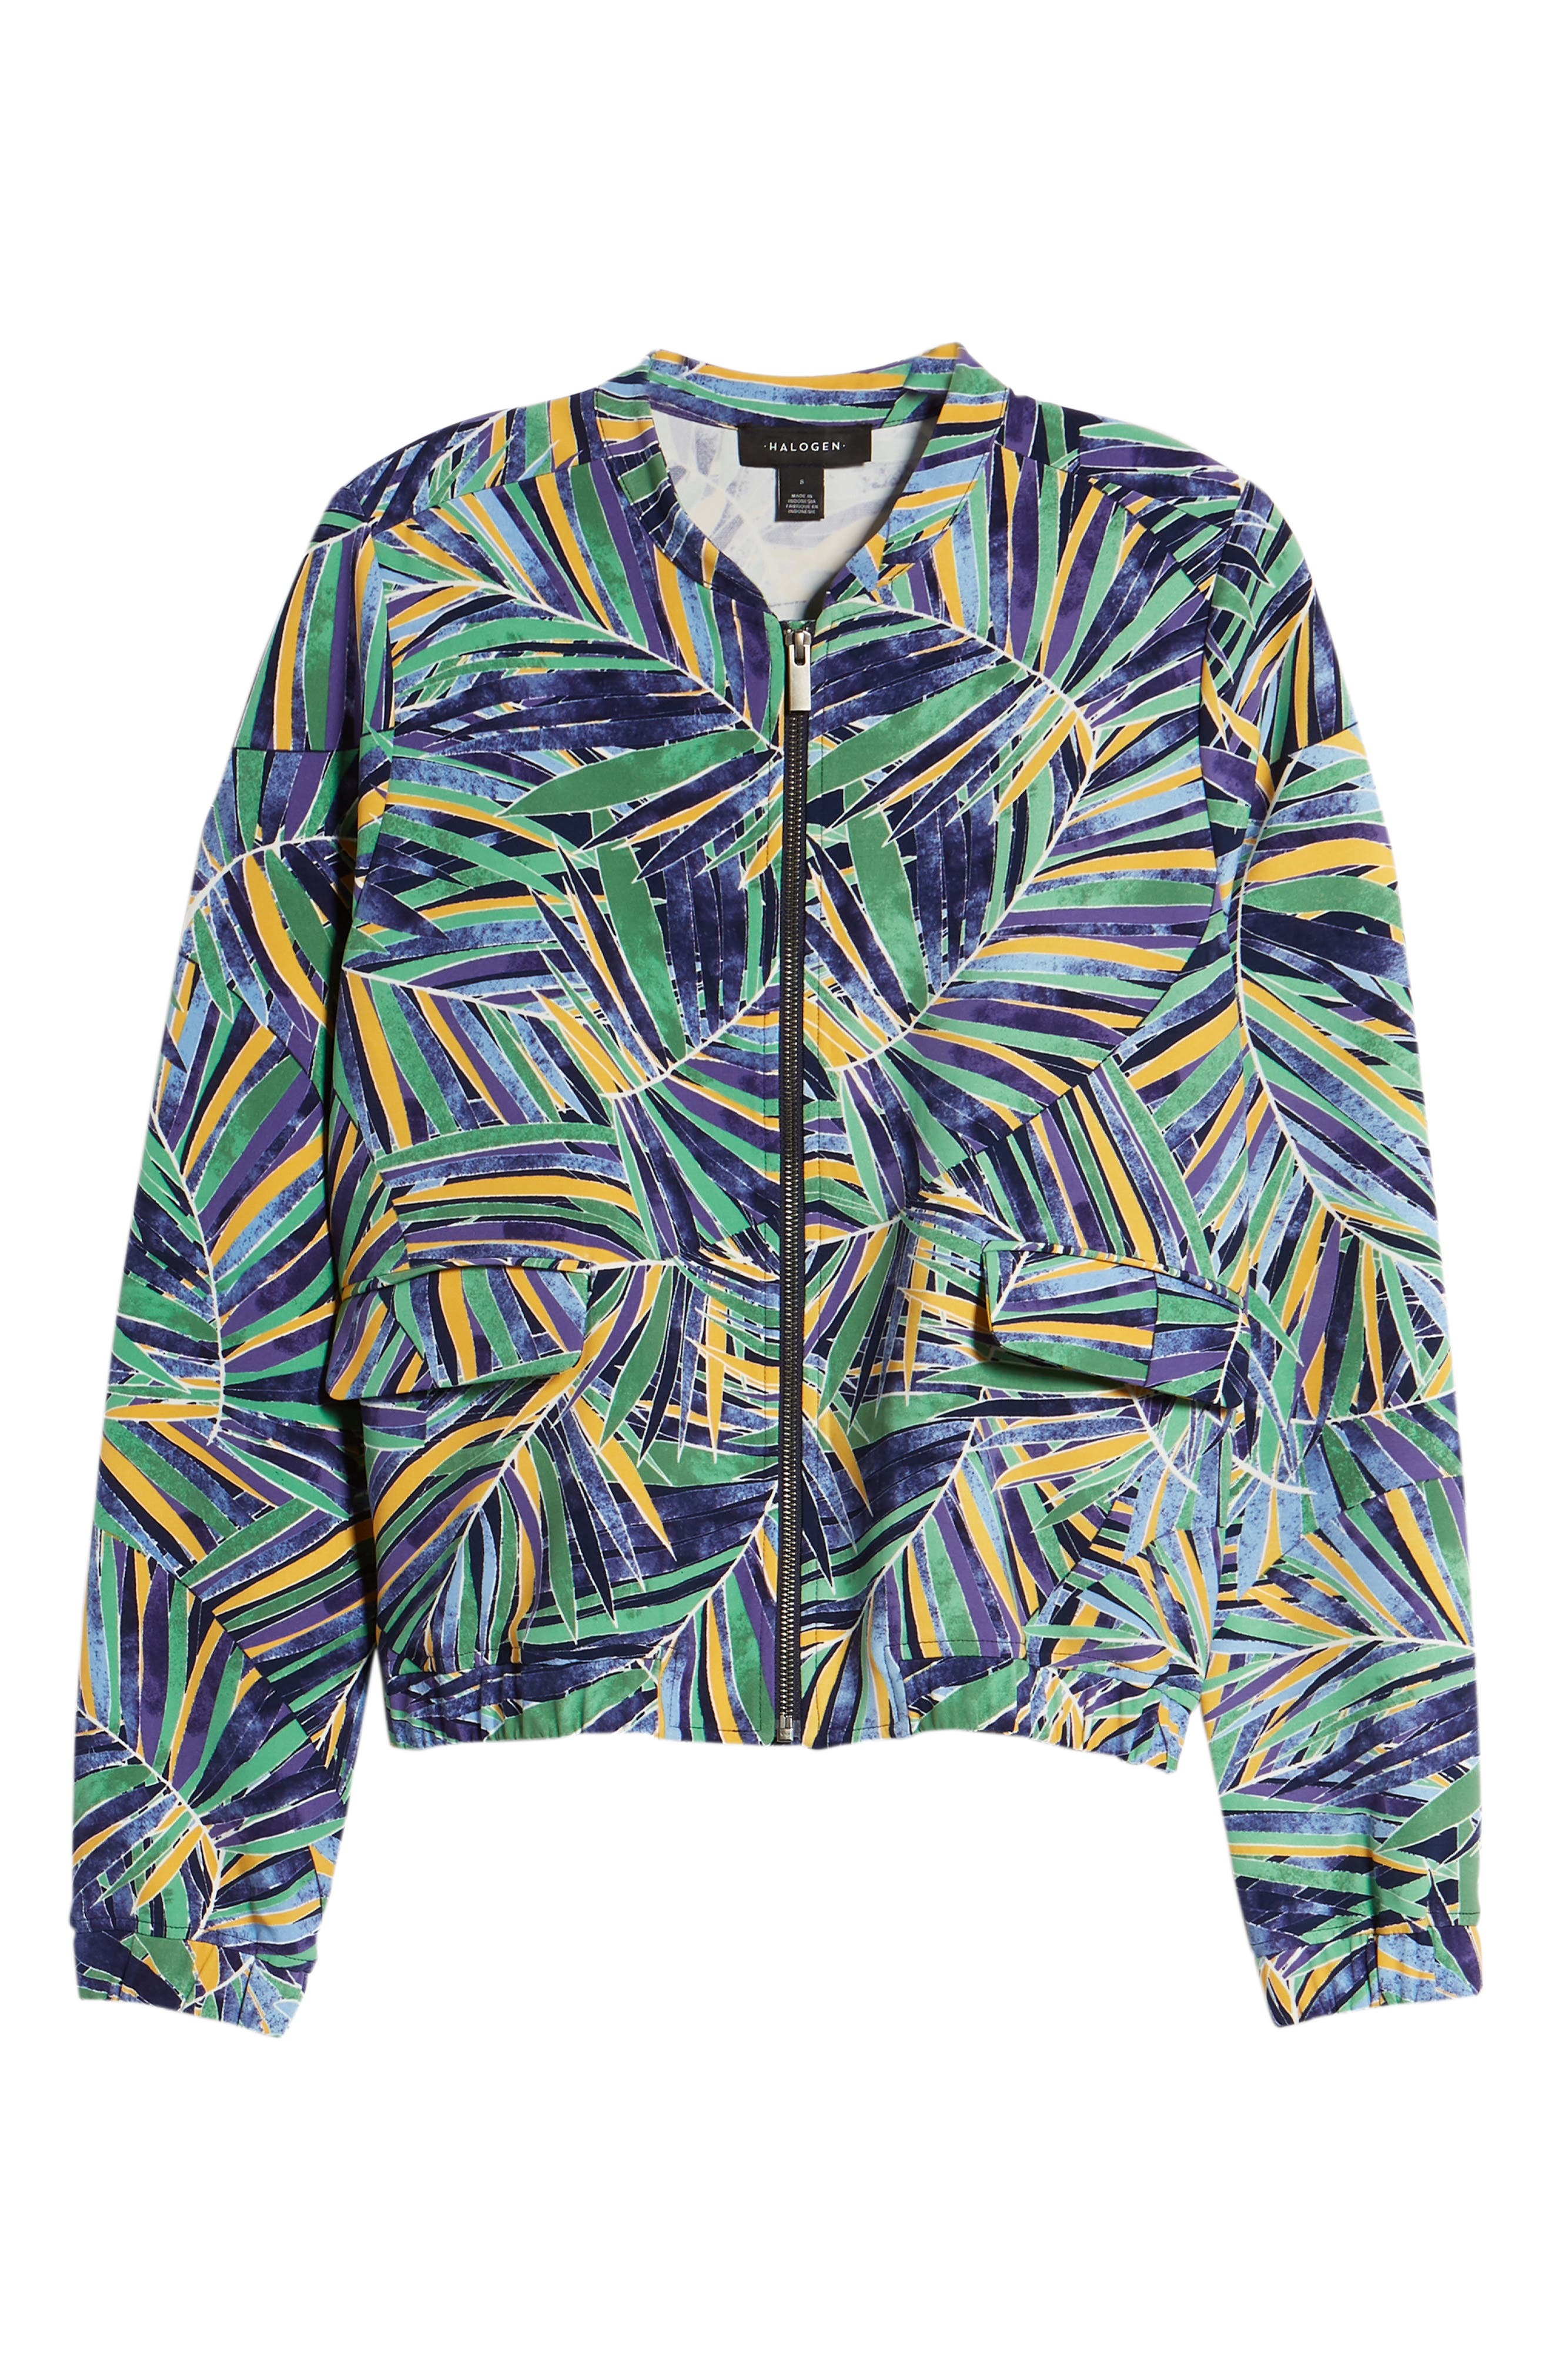 Drawstring Jacket,                             Alternate thumbnail 7, color,                             Green- Blue Palm Print